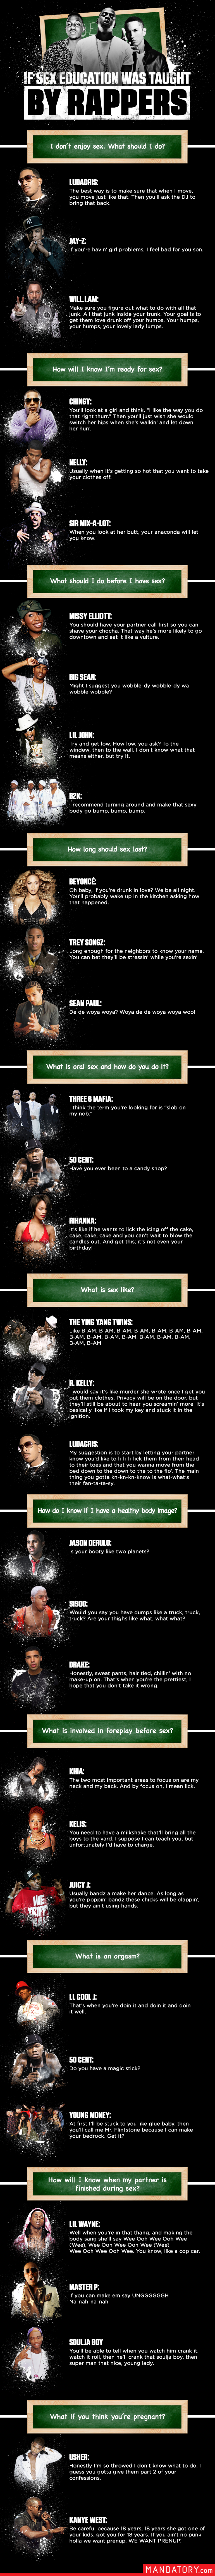 If Sex Education Was Taught By Rappers